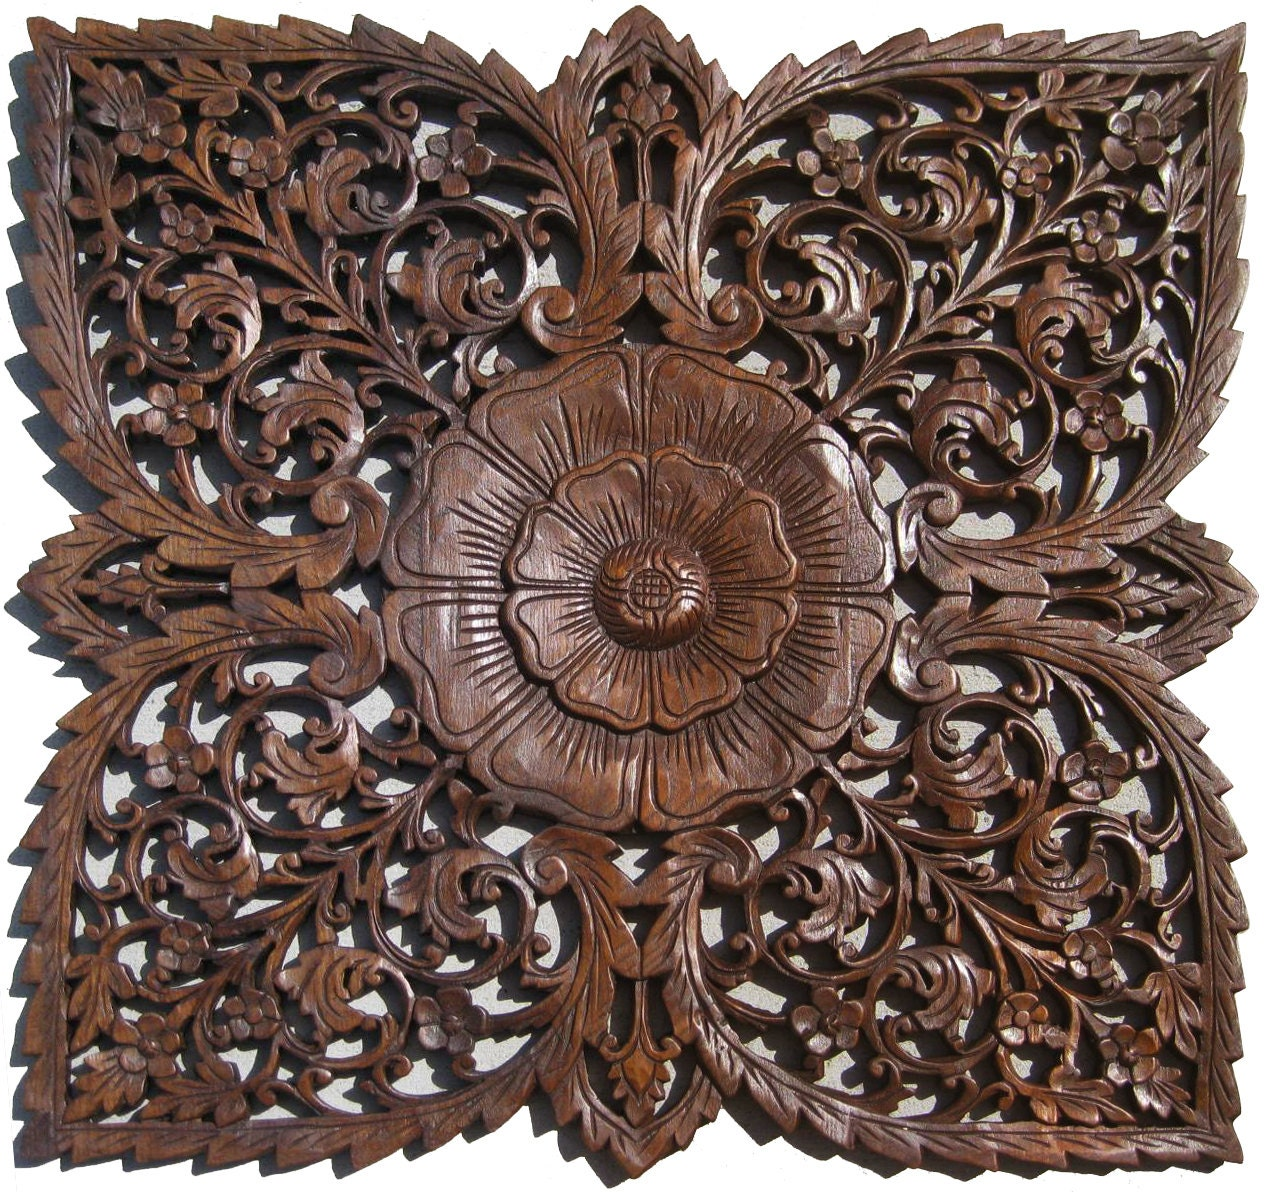 Lotus wooden wall carving hanging handmade by